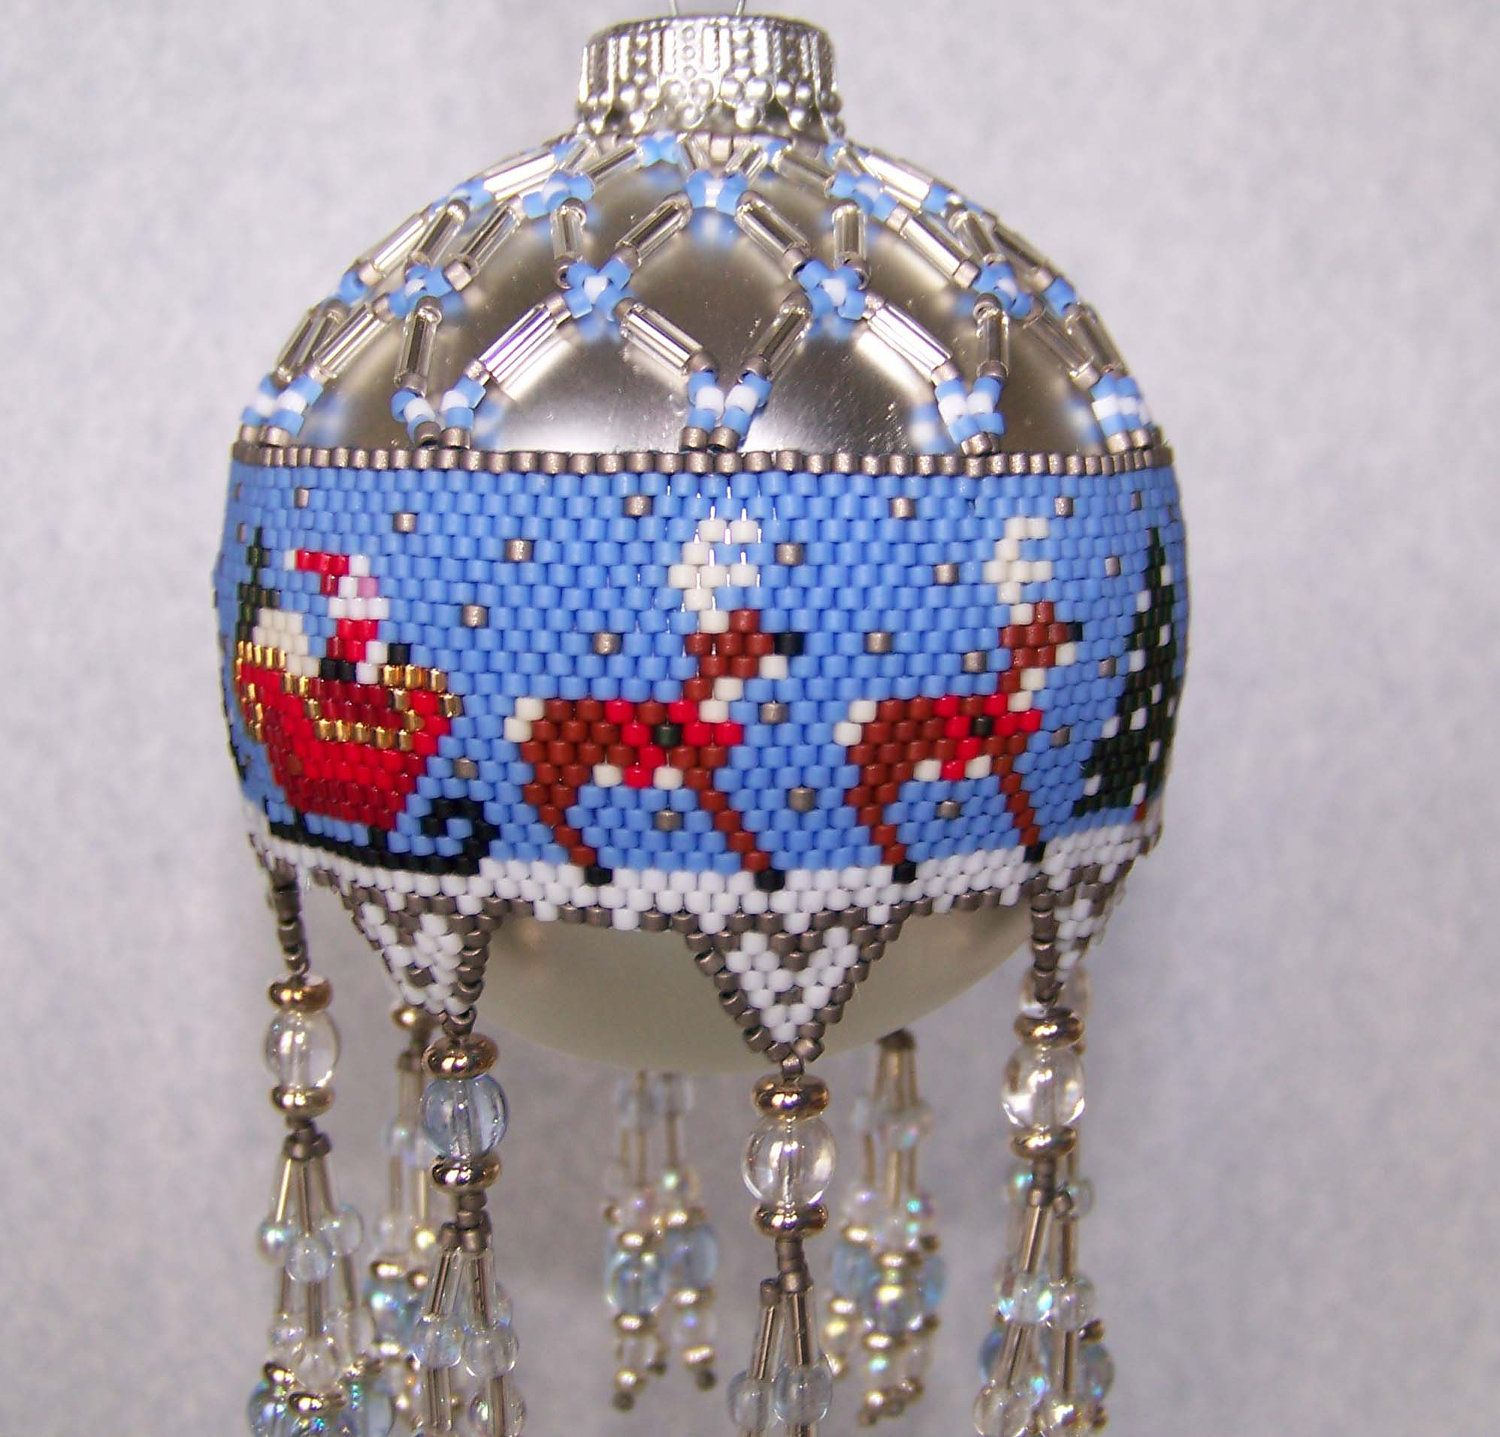 Beaded Ornament Cover Santa S Sleigh Beaded Ornament Covers Beaded Christmas Ornaments Christmas Bead